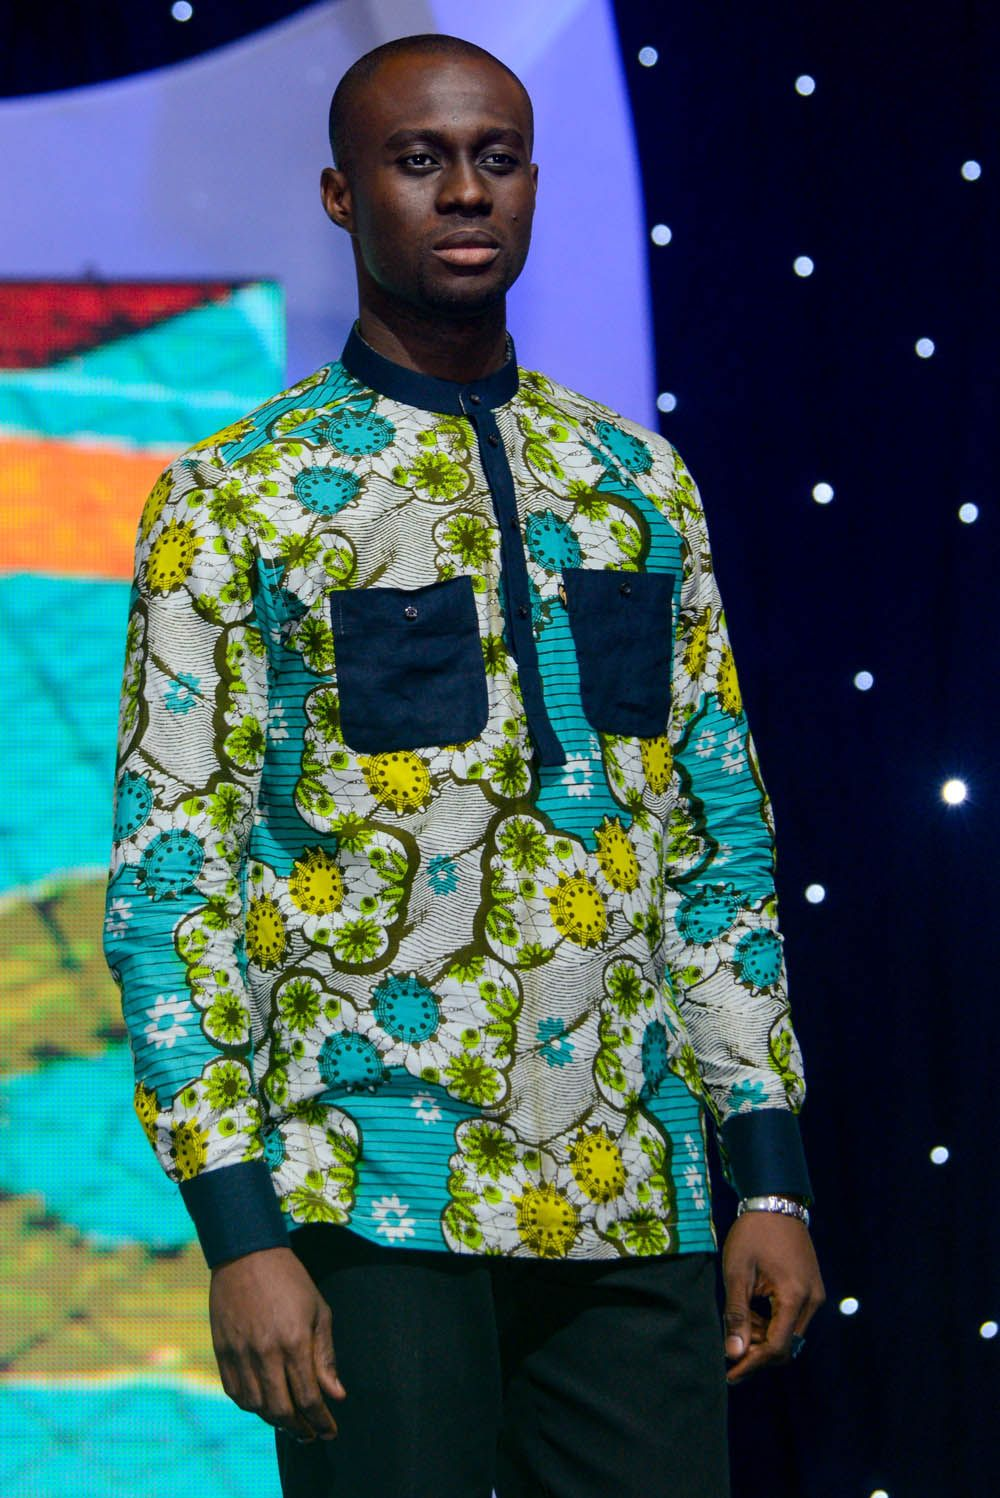 Wax fashion mode homme men African Men, African Fashion, Shiloh,